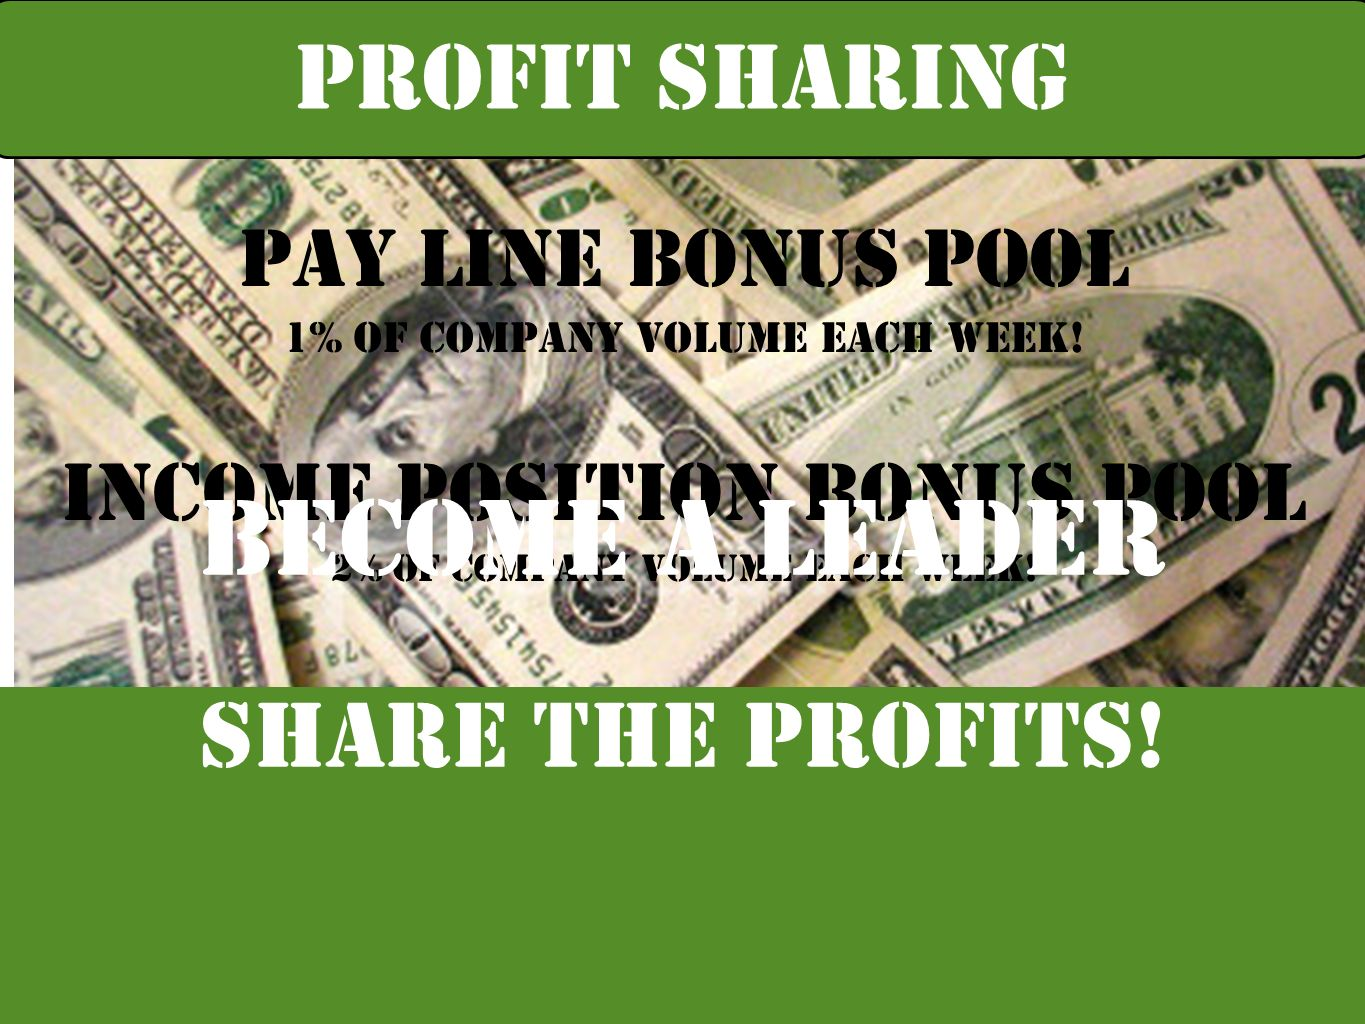 Pay Line Bonus Pool 1% Of Company Volume each Week.